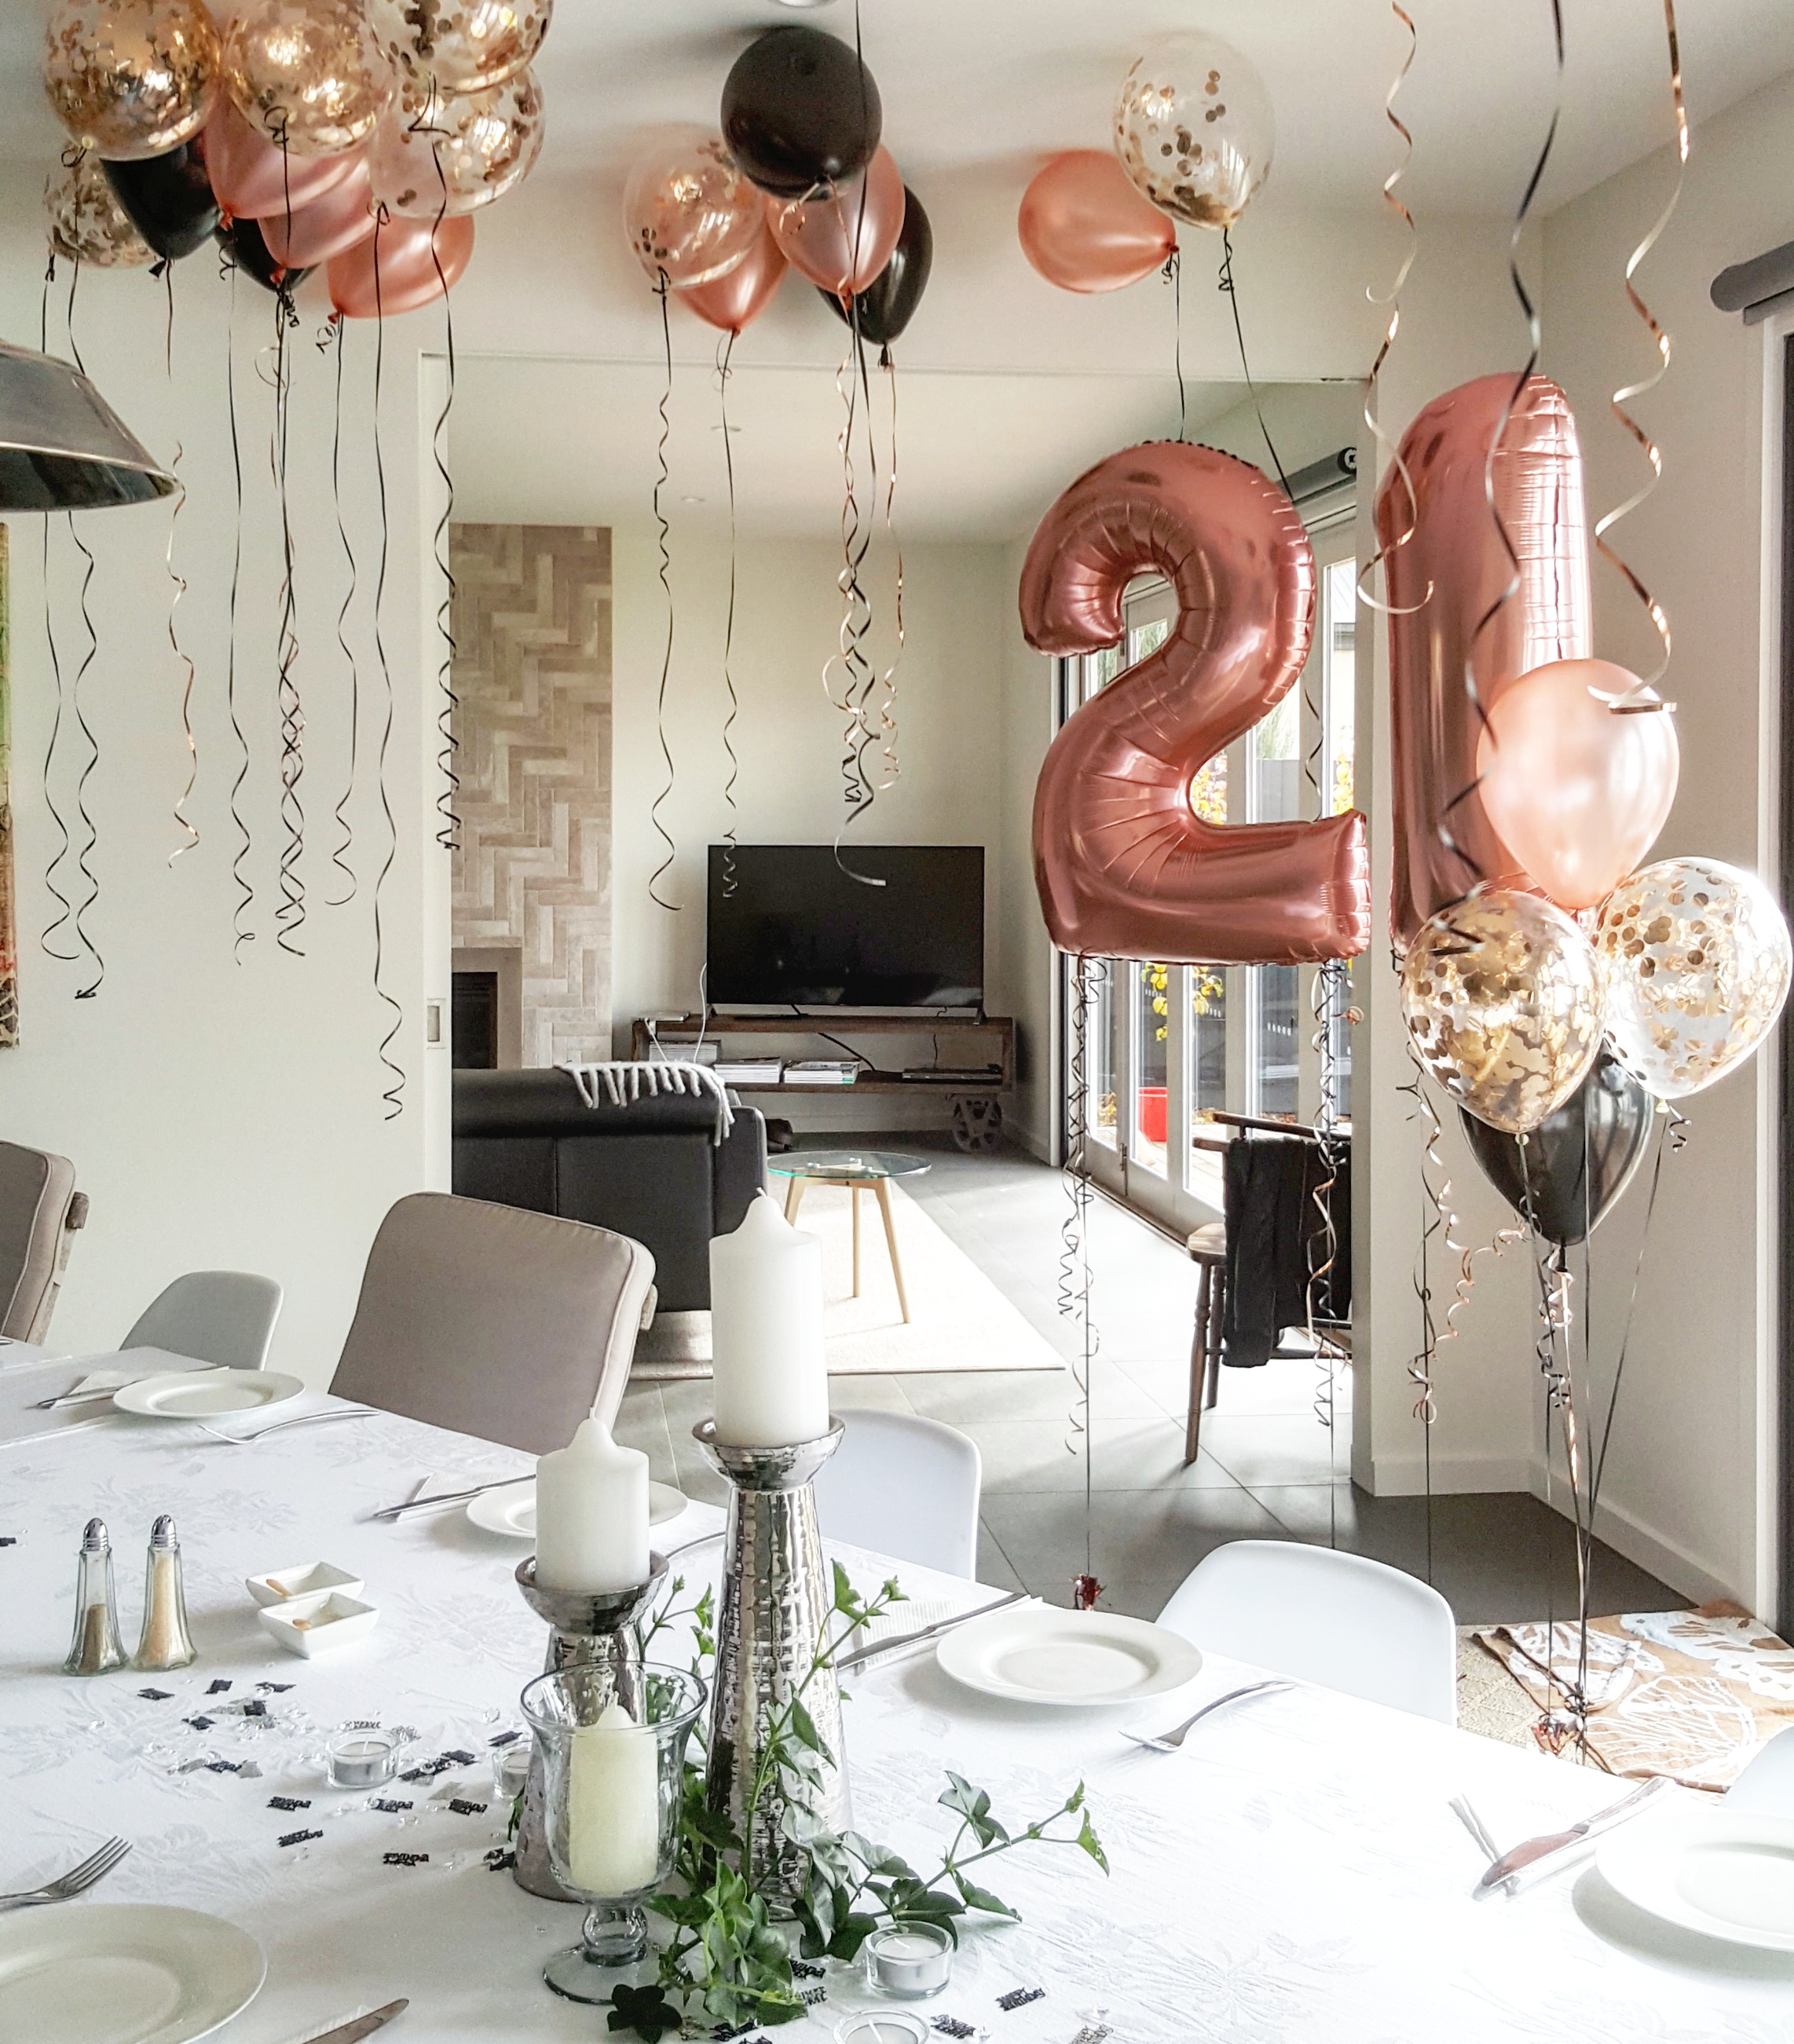 21st birthday decorations